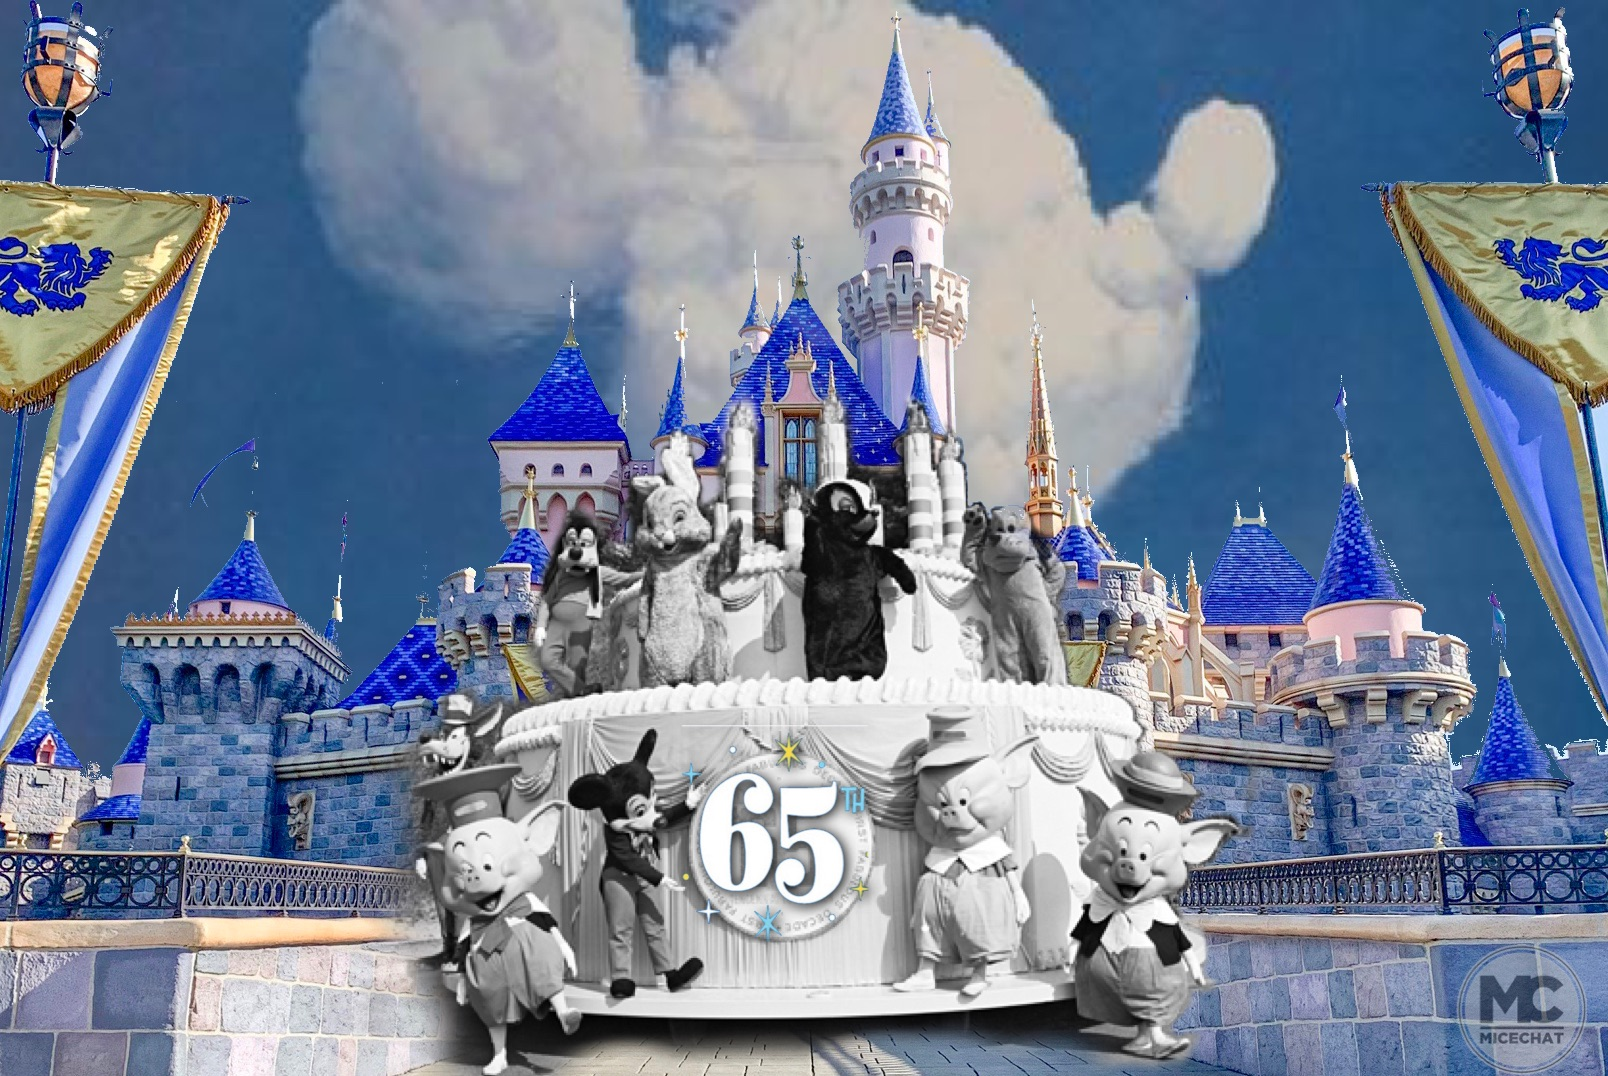 Here S How To Celebrate Disneyland S 65th Anniversary From Home